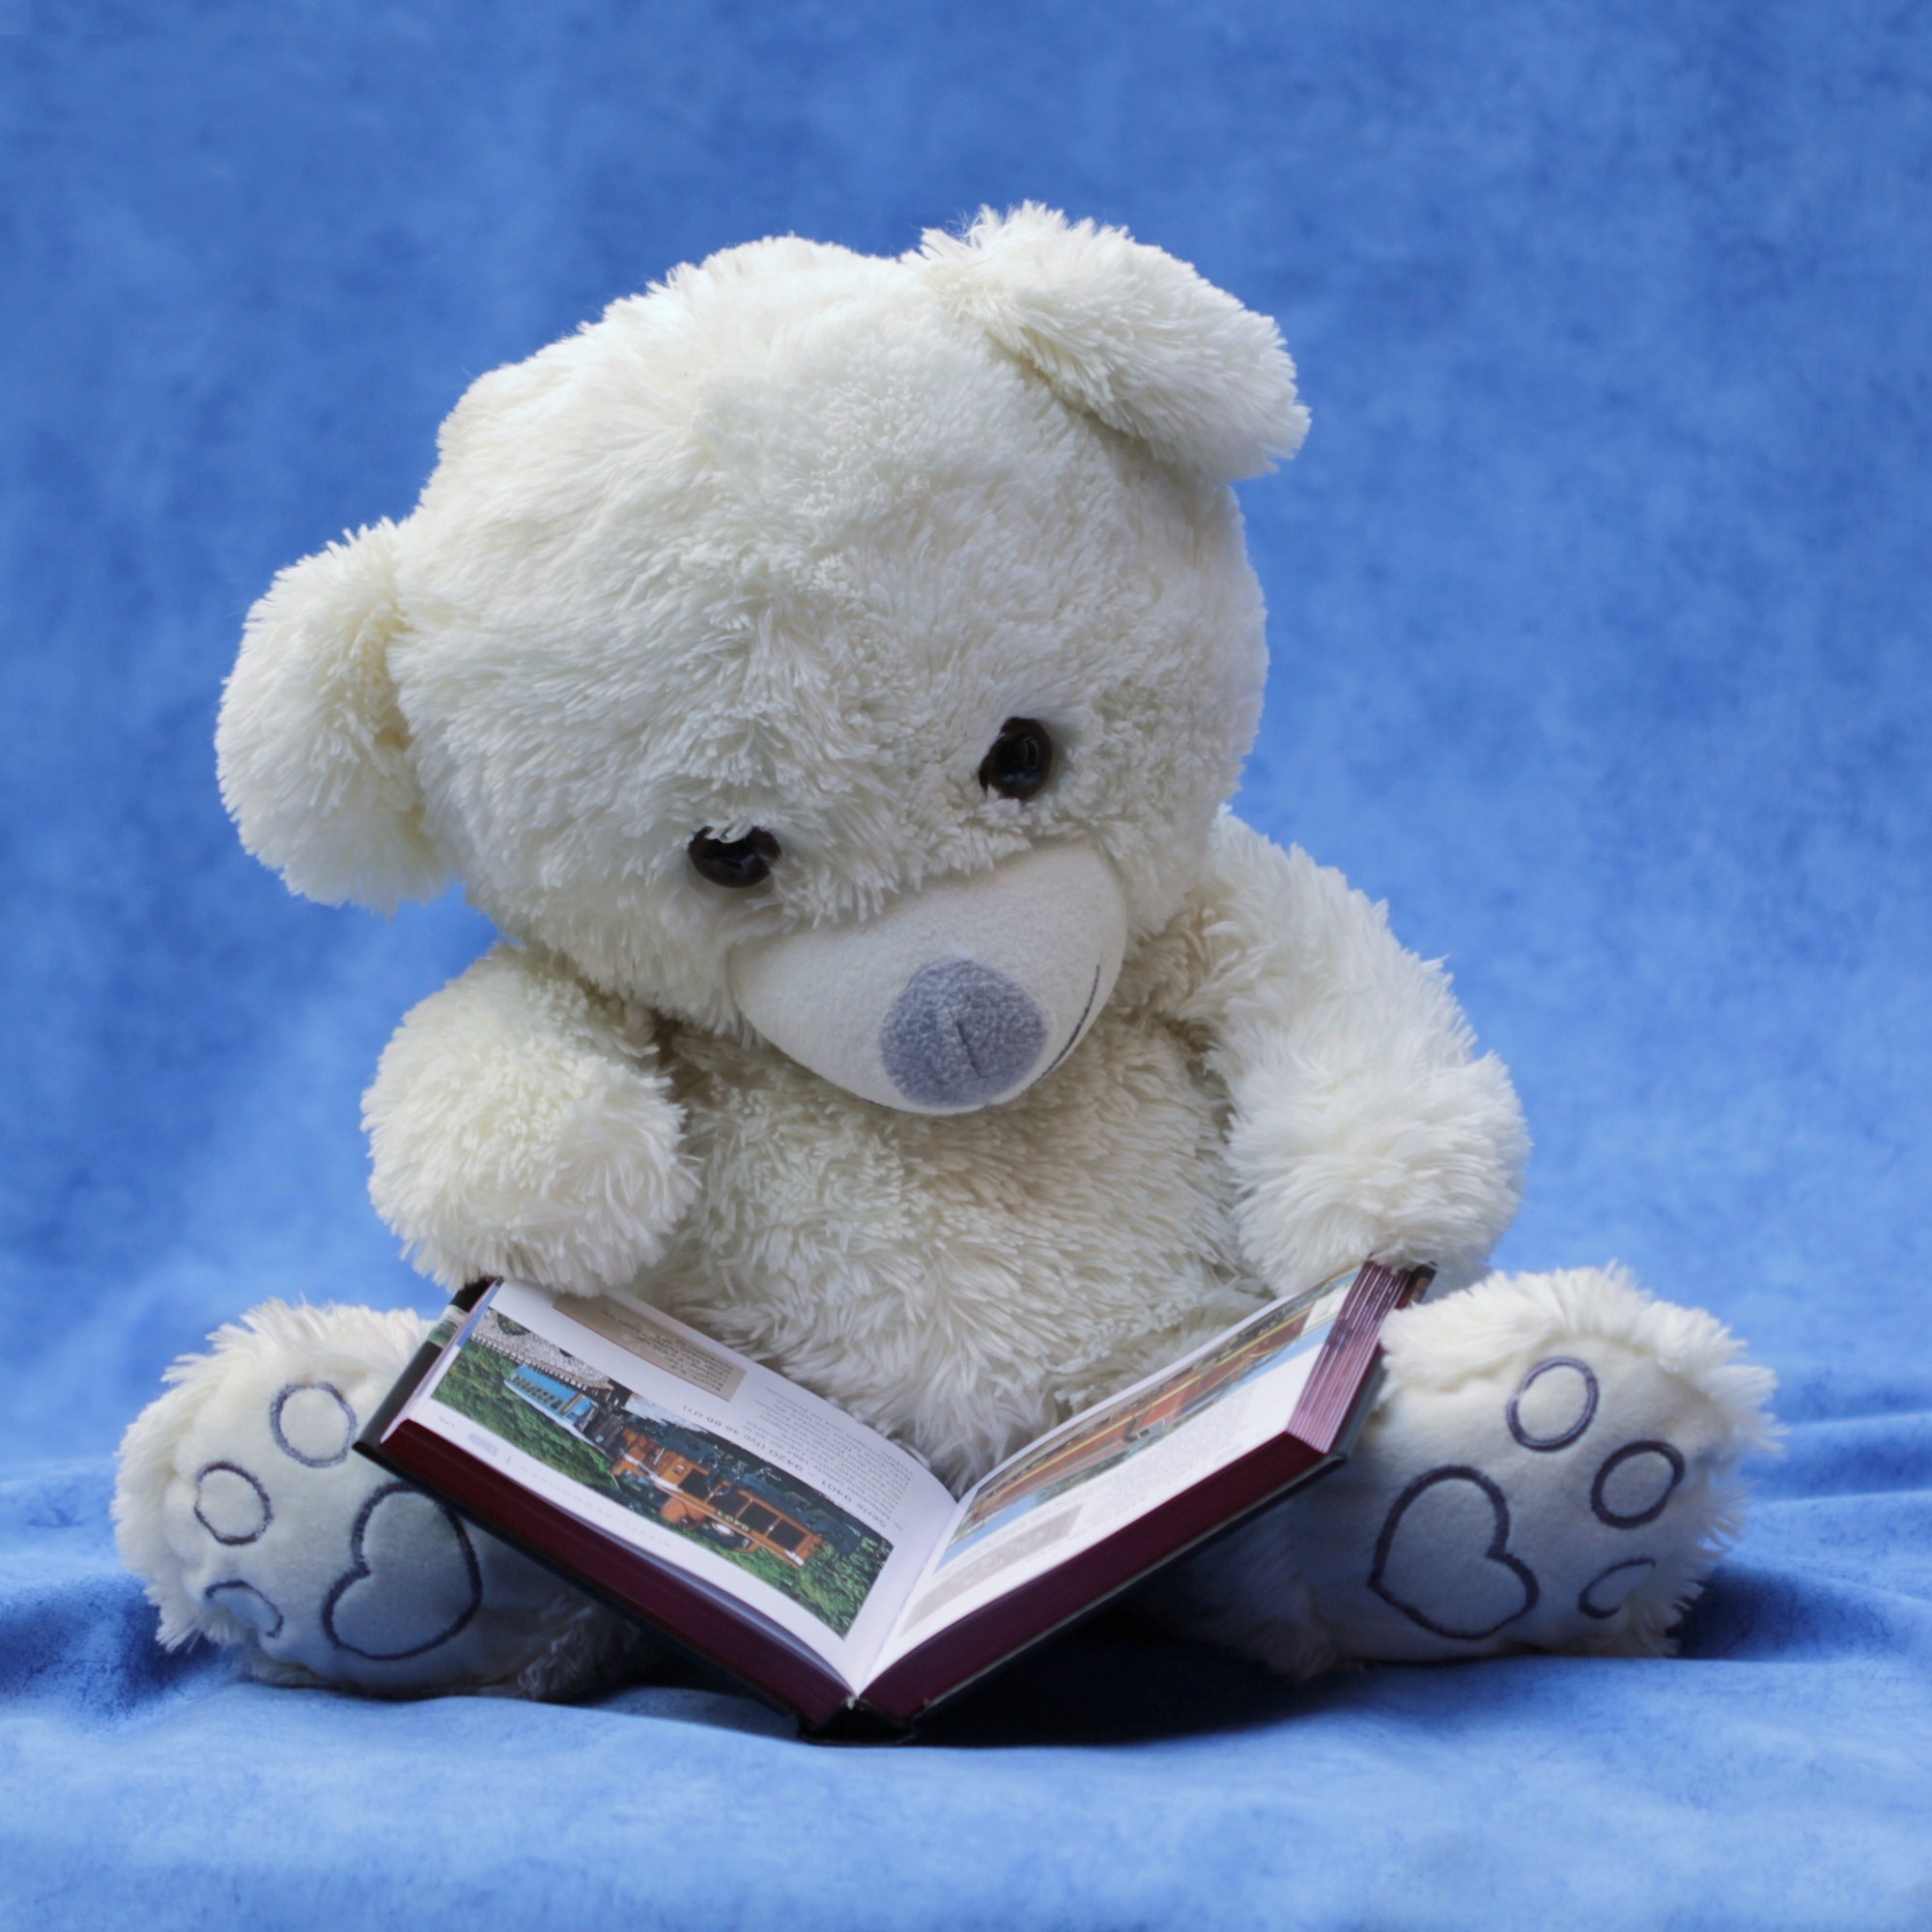 still-life-teddy-white-read-159080